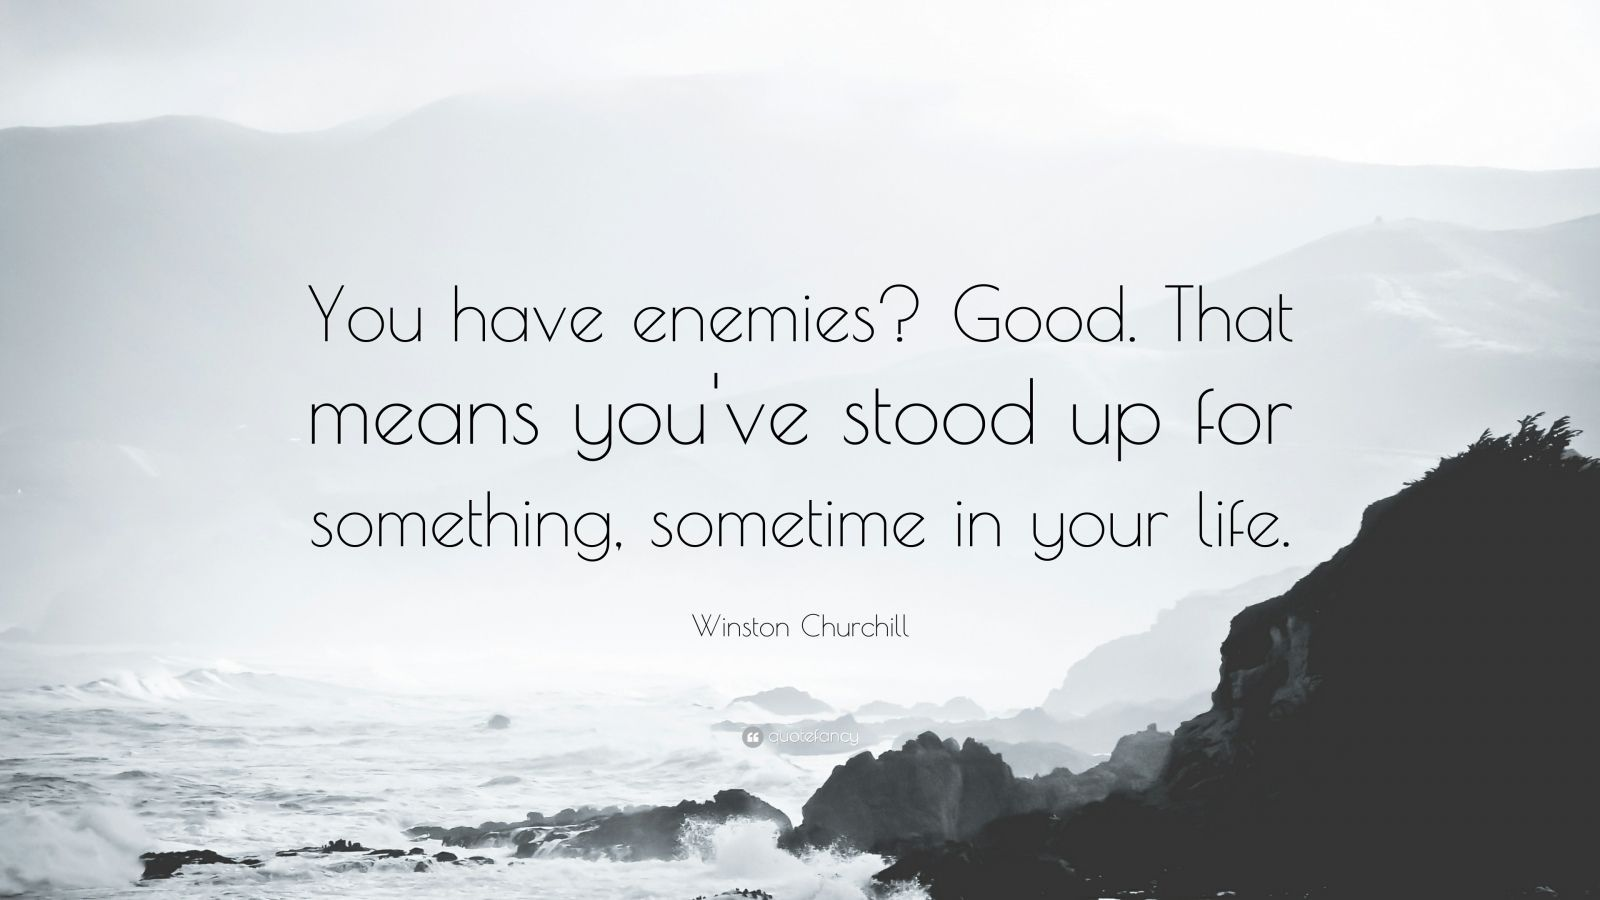 Life Quotes You Have Enemies Good That Means You Ve Stood Up For Something Sometime In Your Life Max Lucado Quotes Startup Quotes Steven Furtick Quotes